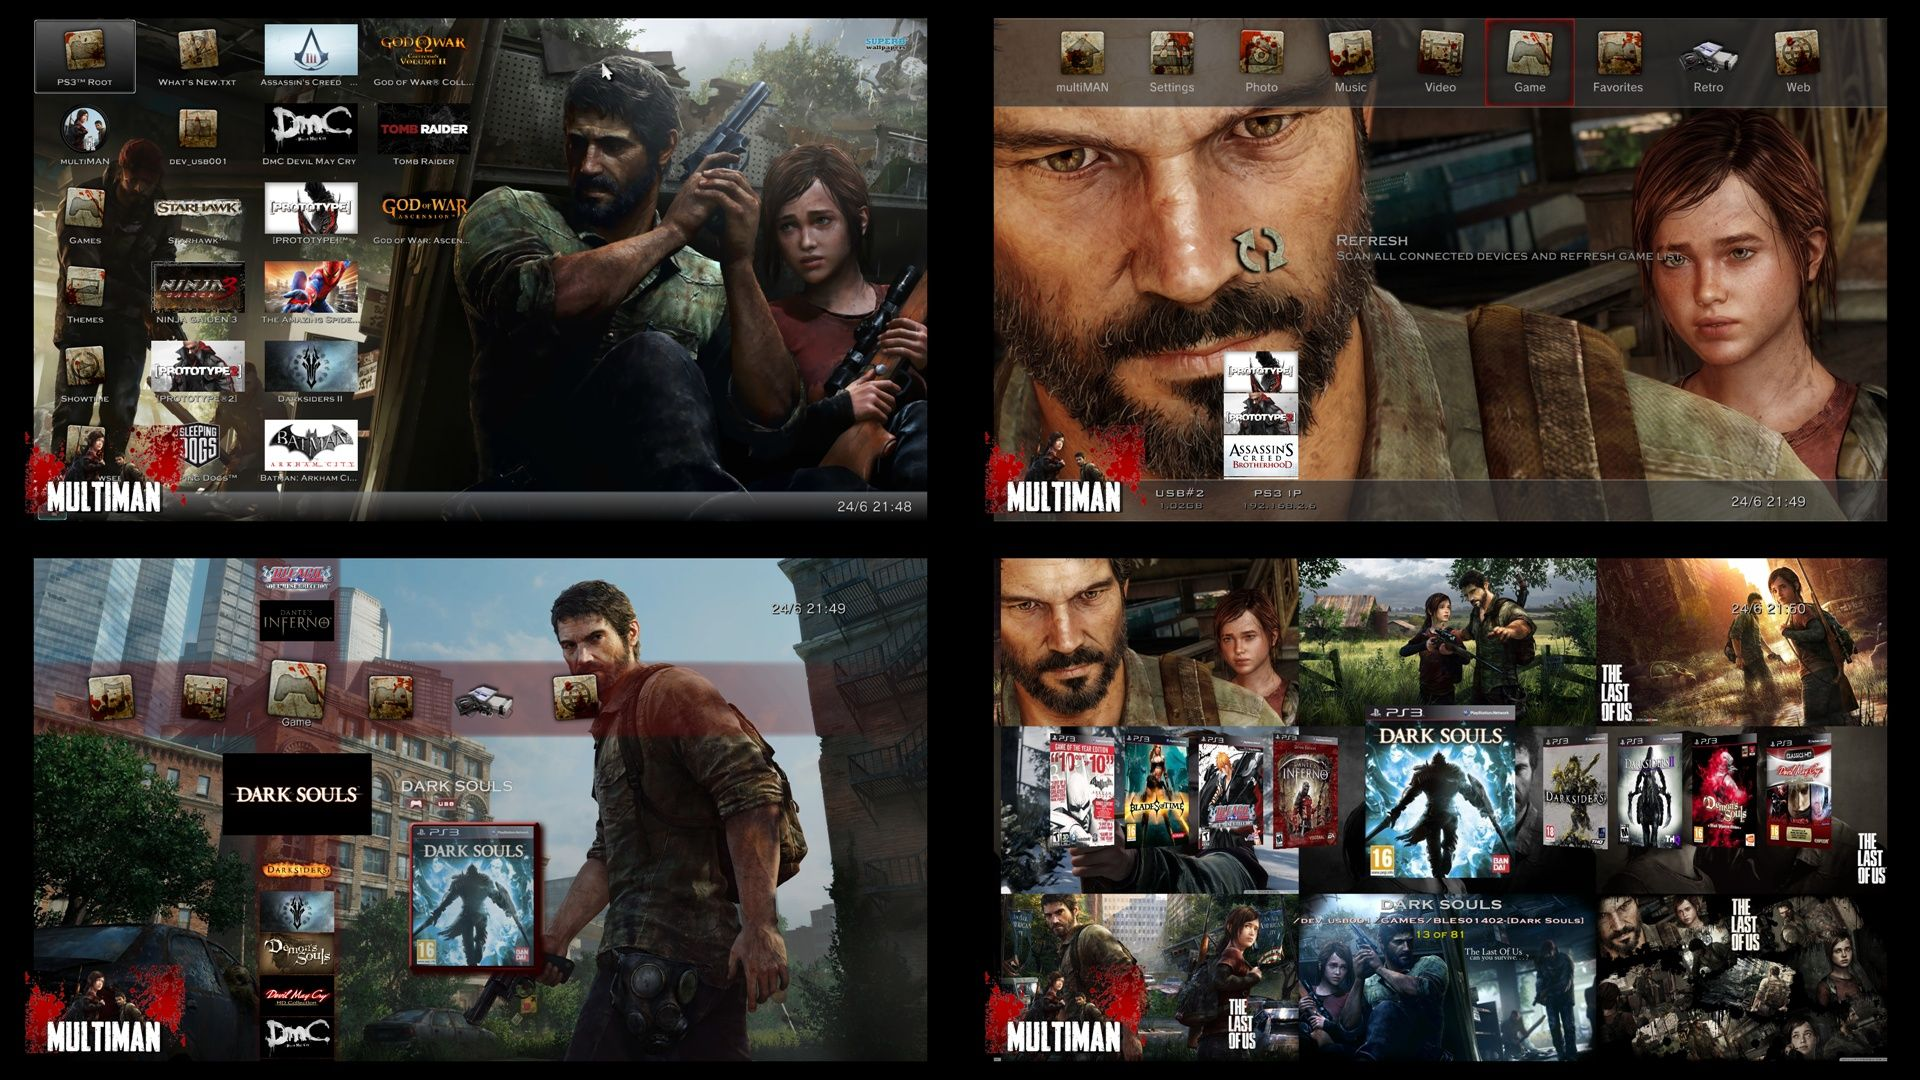 Multiman Ps3 Themes Free Download Hcode123 Ps3cfwfix